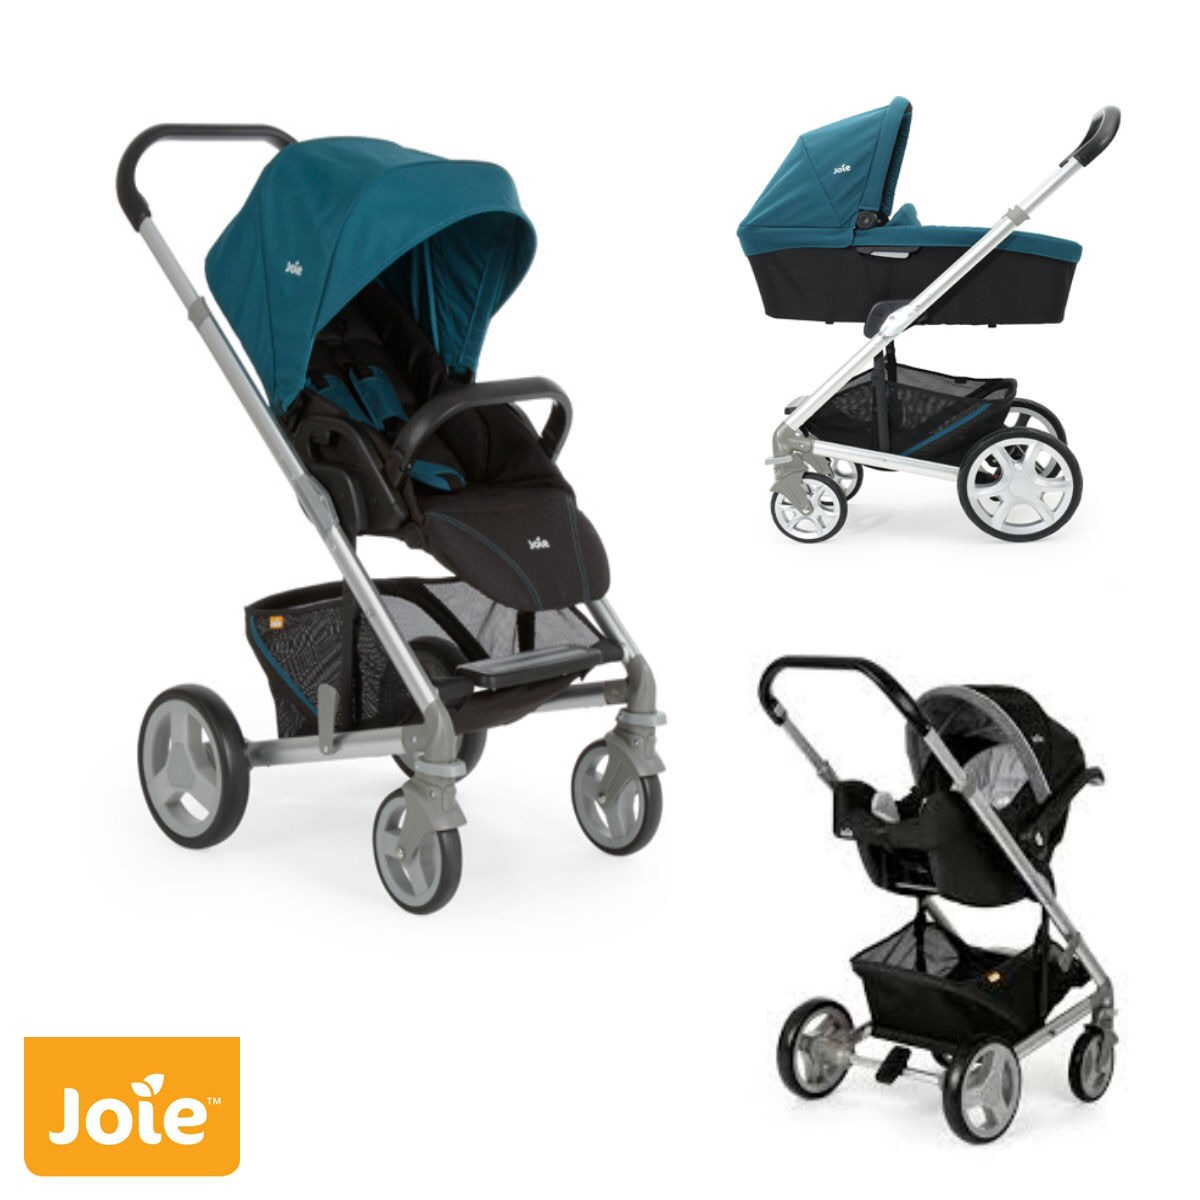 Car Seat Stroller Travel System Reviews Joie Chrome Review Dodgingtigers